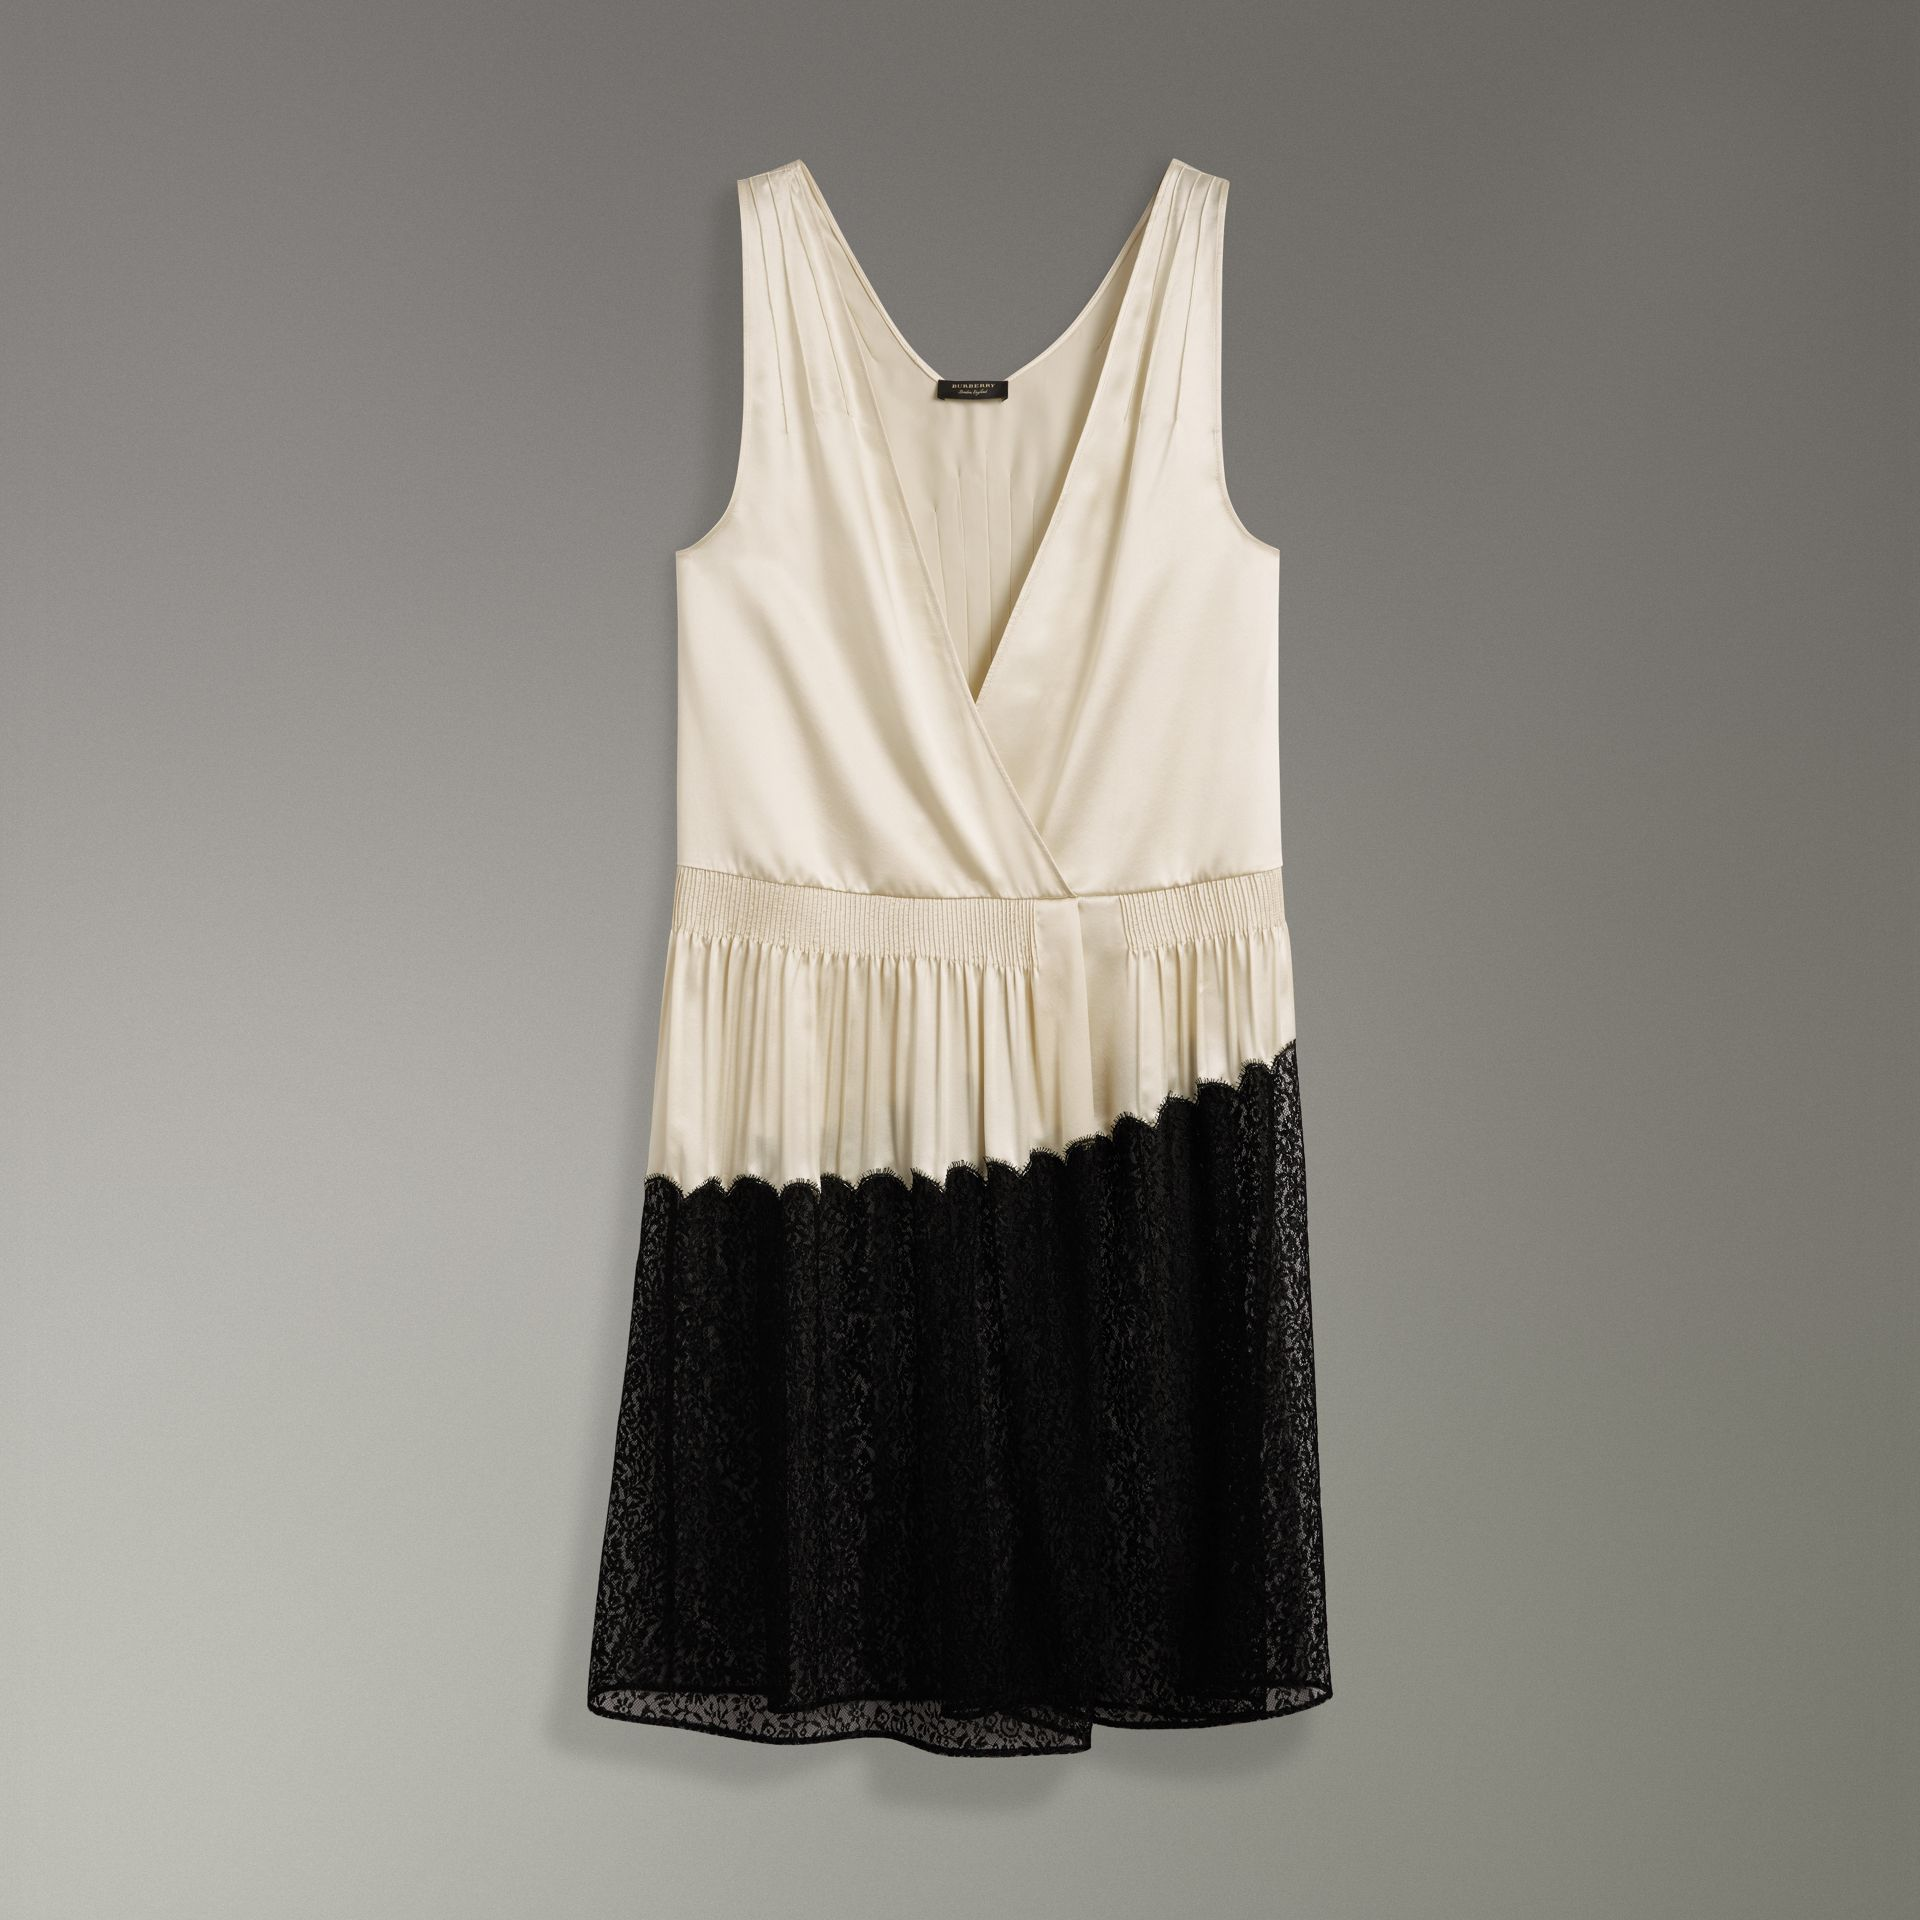 Silk Satin and Lace Sleeveless Dress in Cream - Women | Burberry Canada - gallery image 3